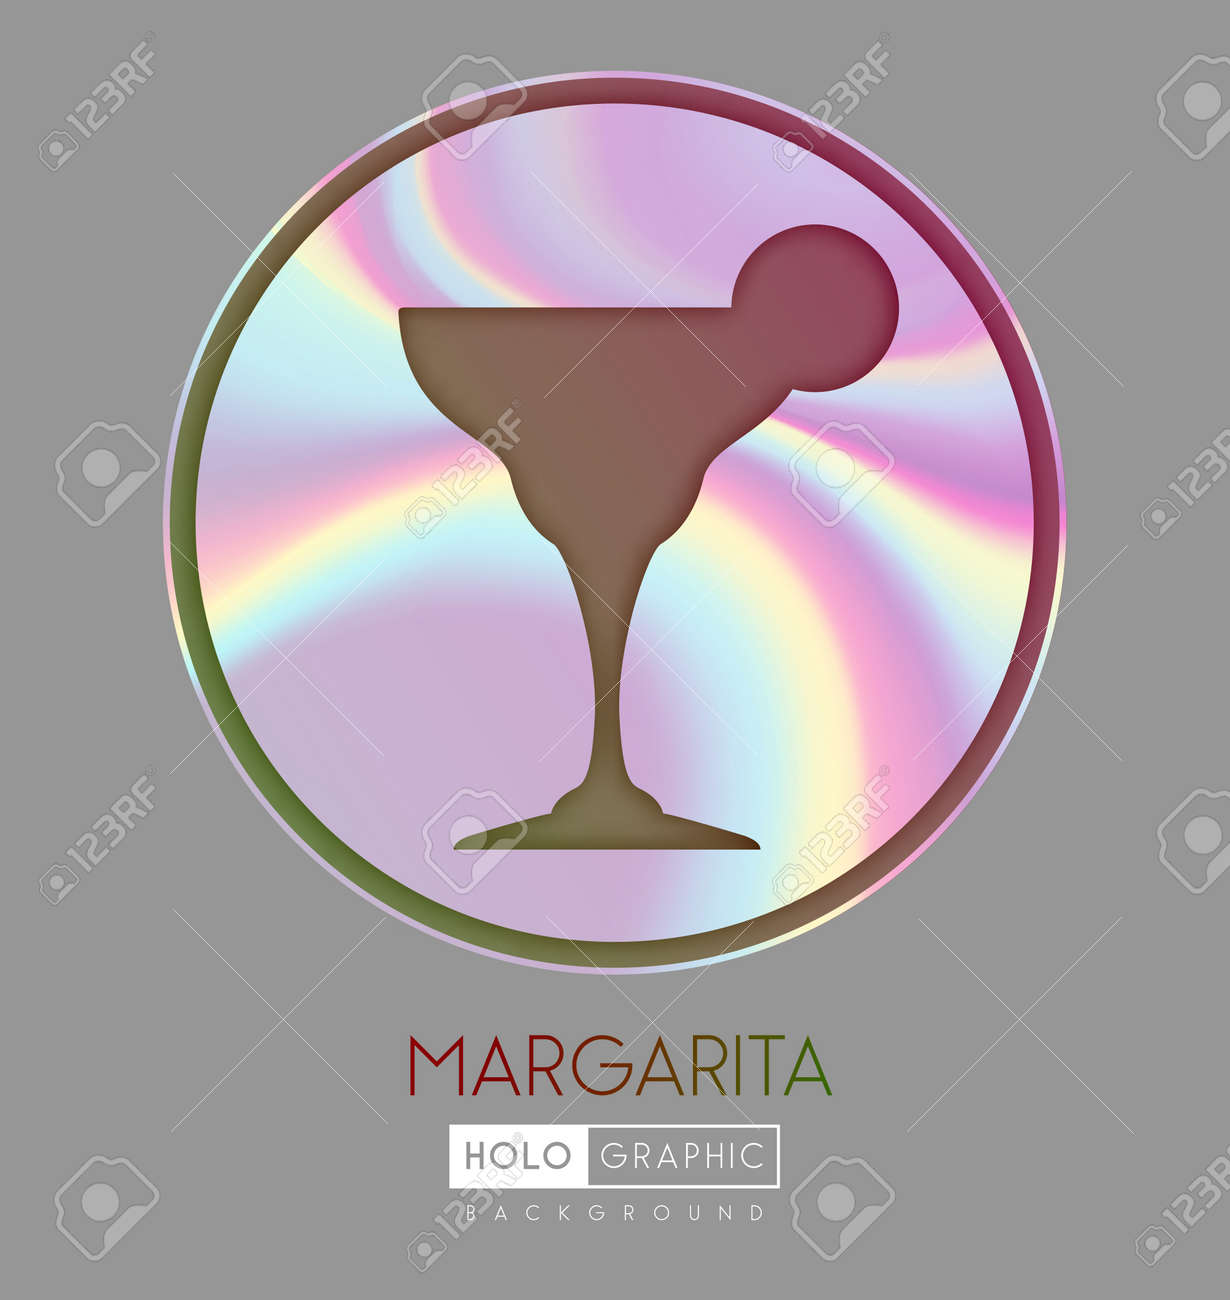 Cocktail silhouette on abstract holographic background. Margarita cocktail holographic icon - 169983521